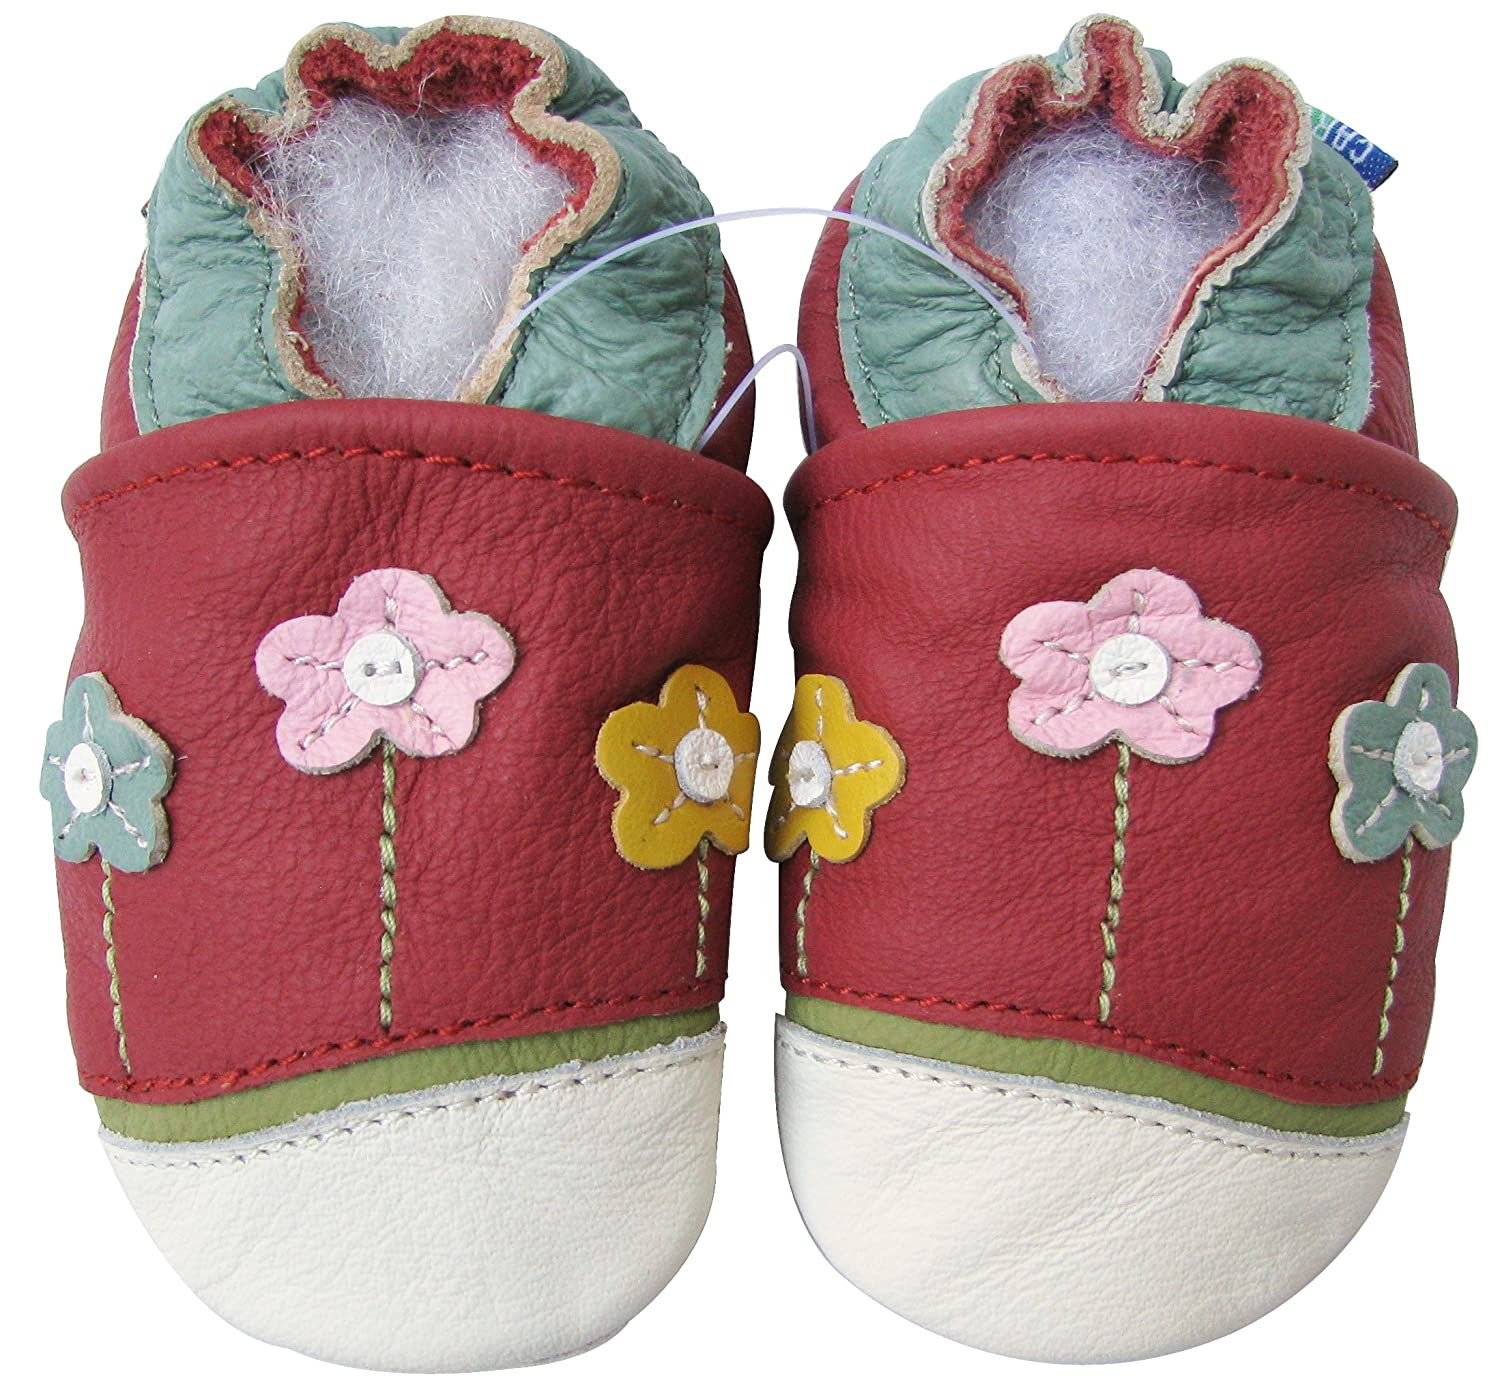 Carozoo Unisex Soft Sole Leather Baby Shoes Infant Toddler Kids Slippers Little Flower Red 3-4y